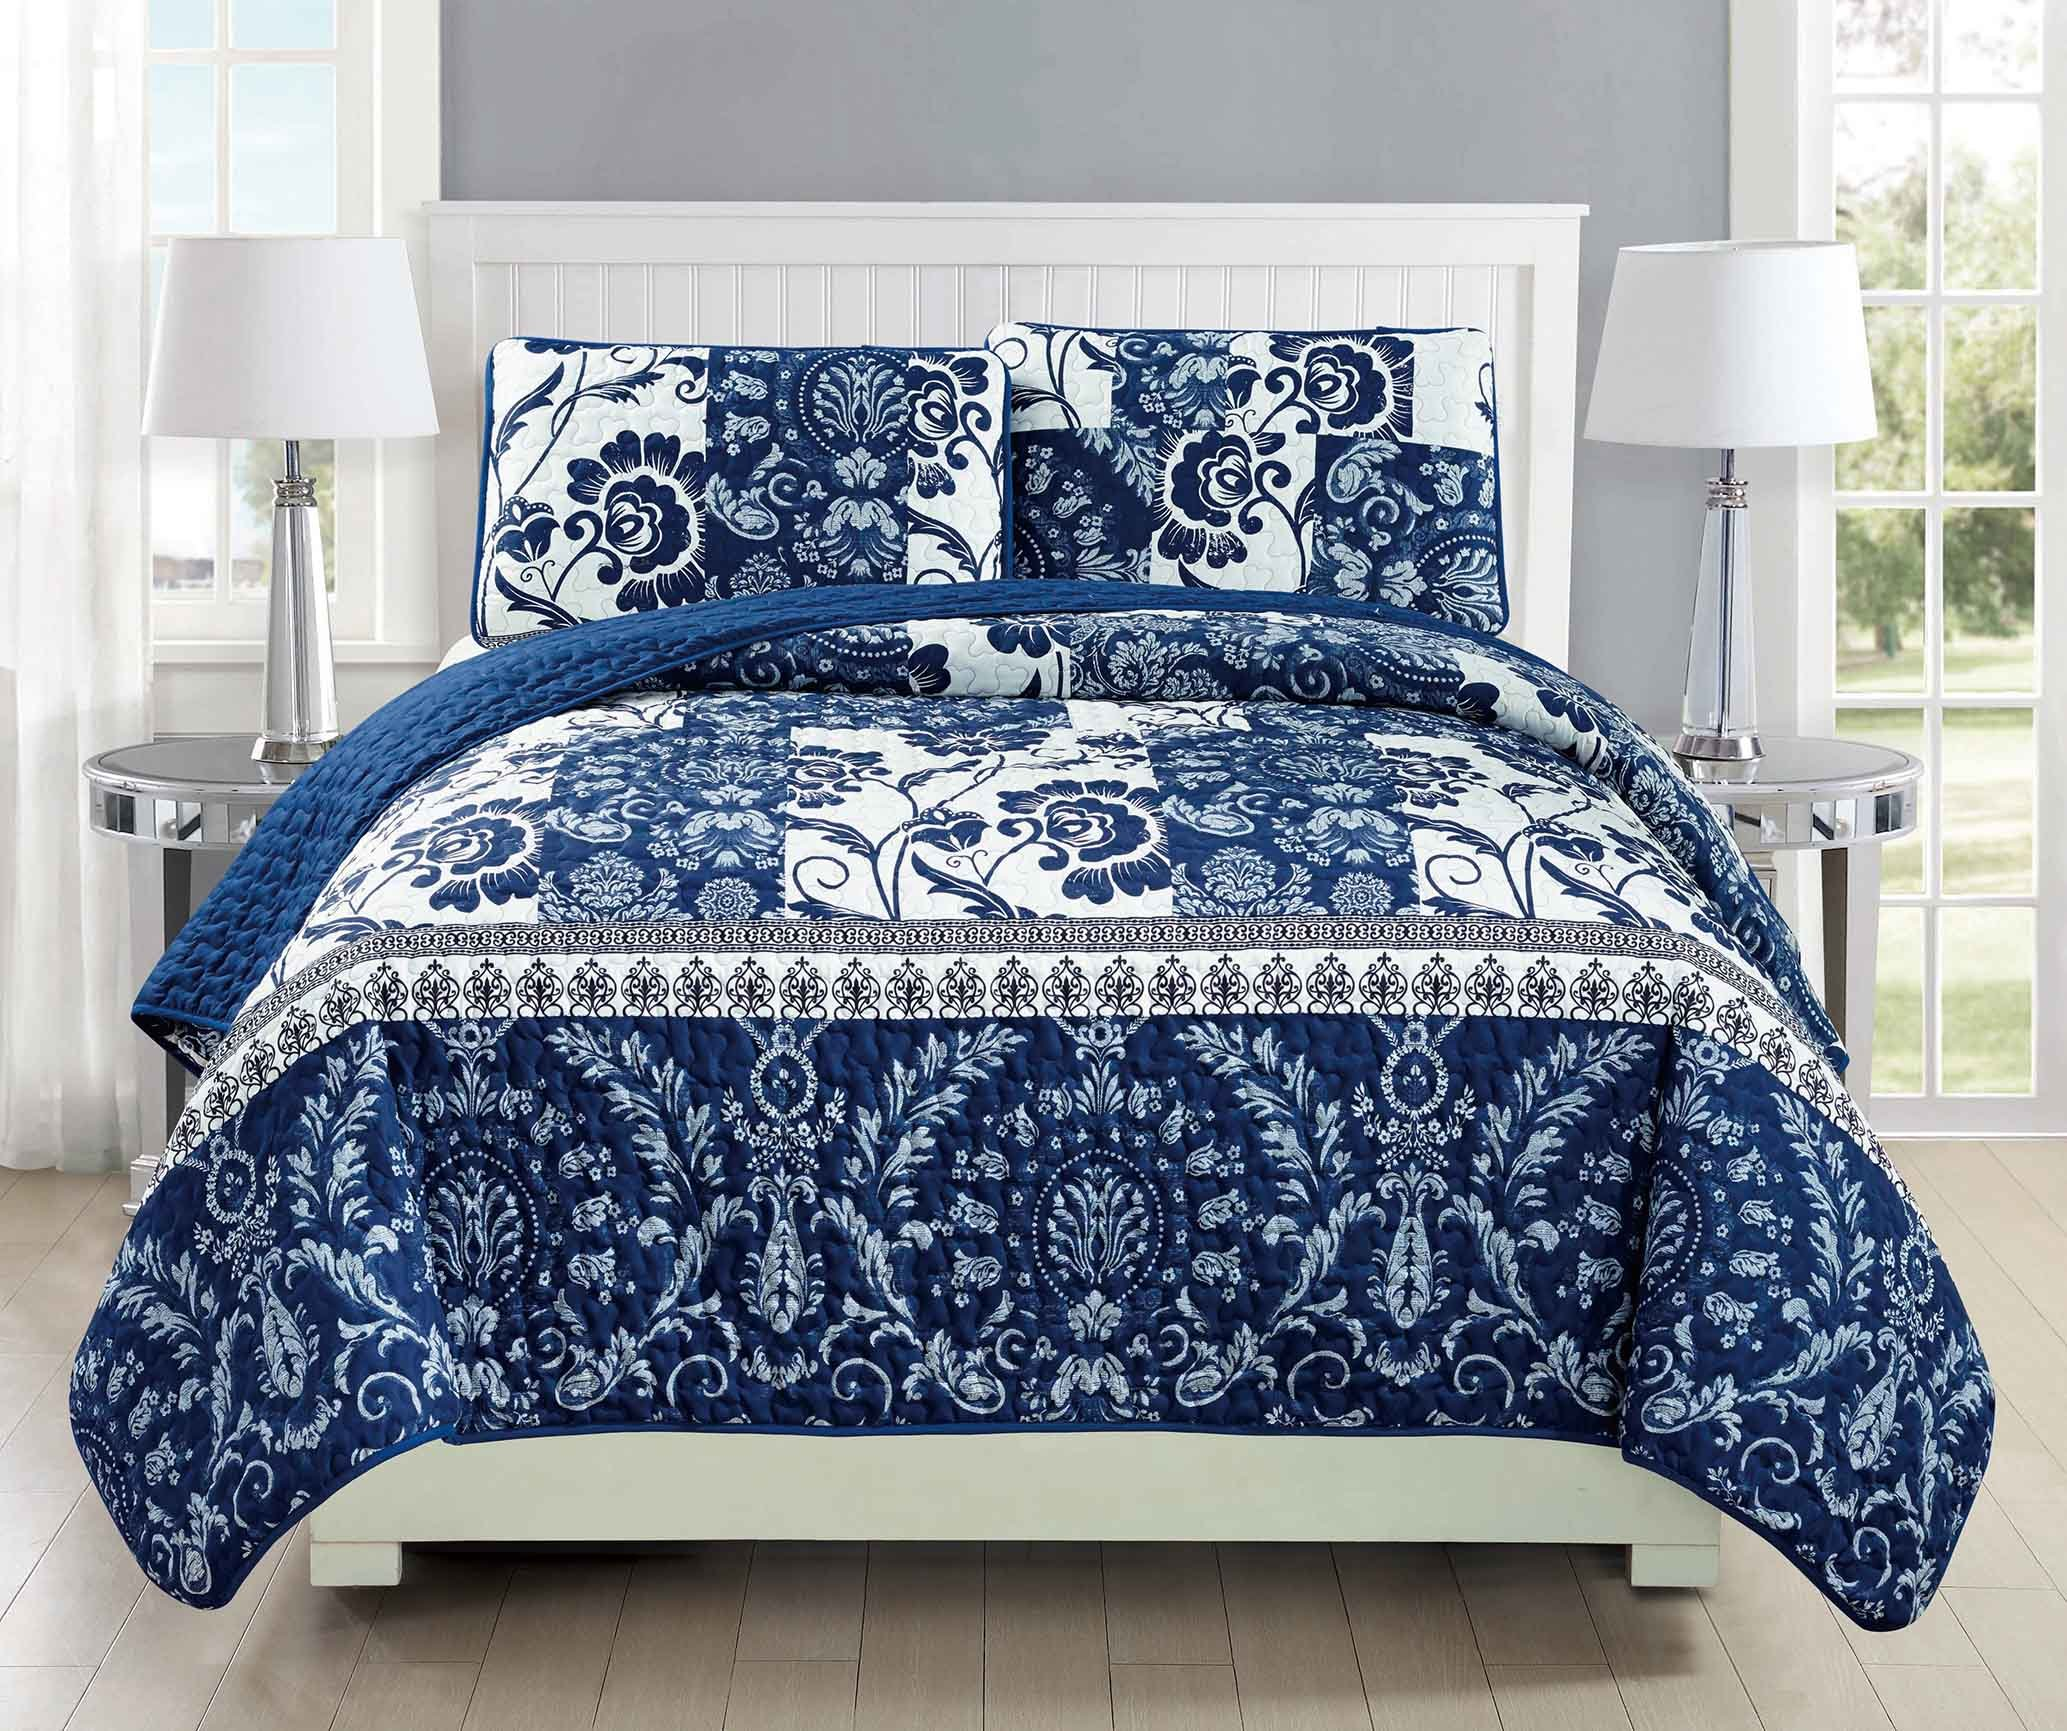 Mk Collection 3pc Bedspread coverlet quilted Floral White Navy Blue Over Size New #186 King/California King